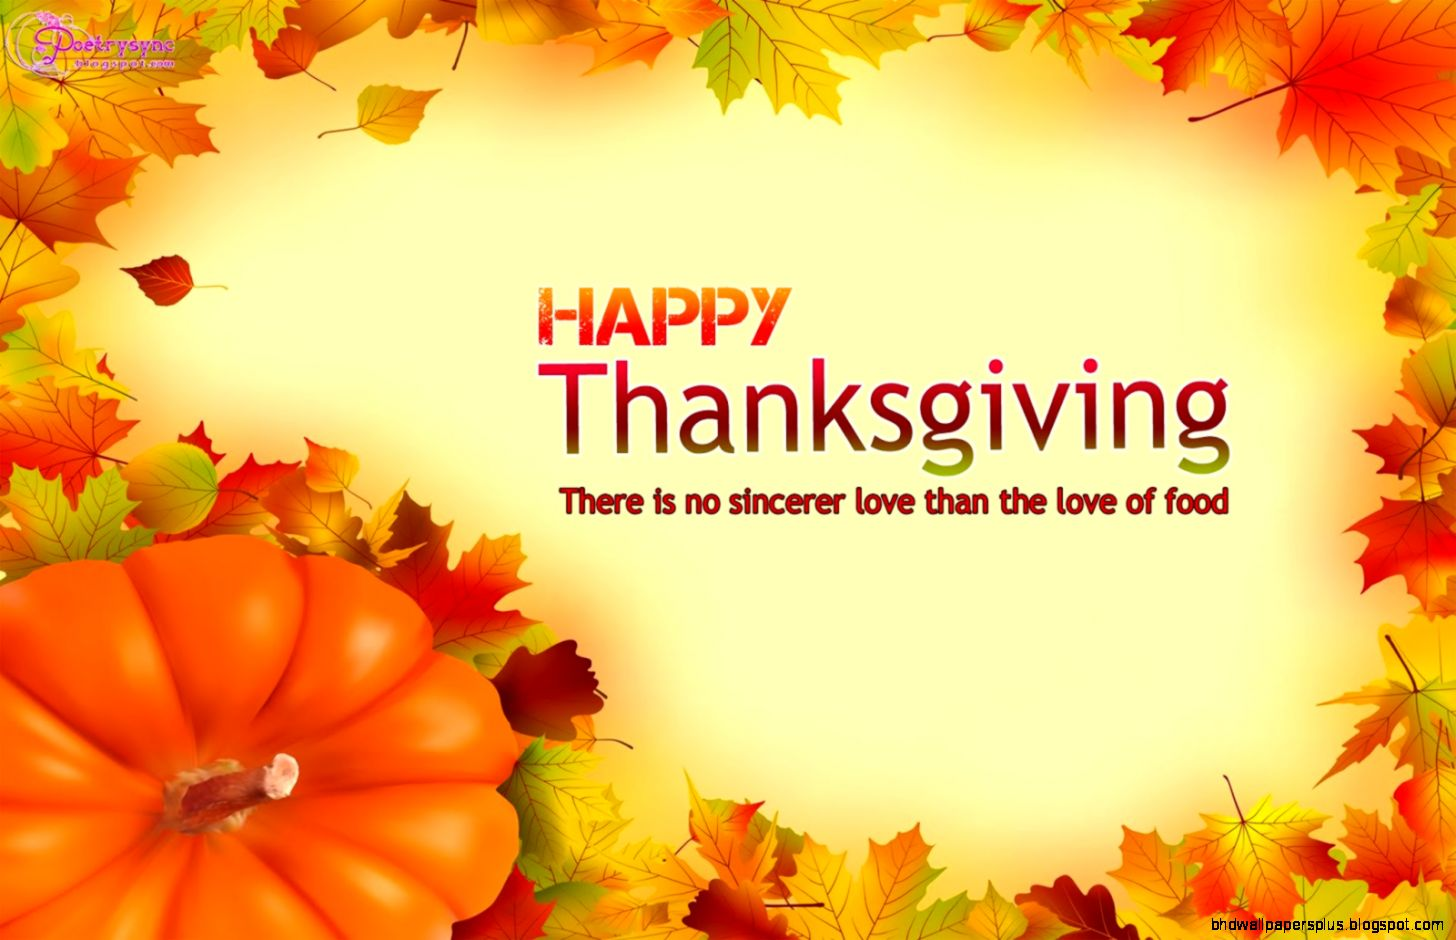 Free Happy Thanksgiving Quotes Wishes Greetings Sayings Prayers